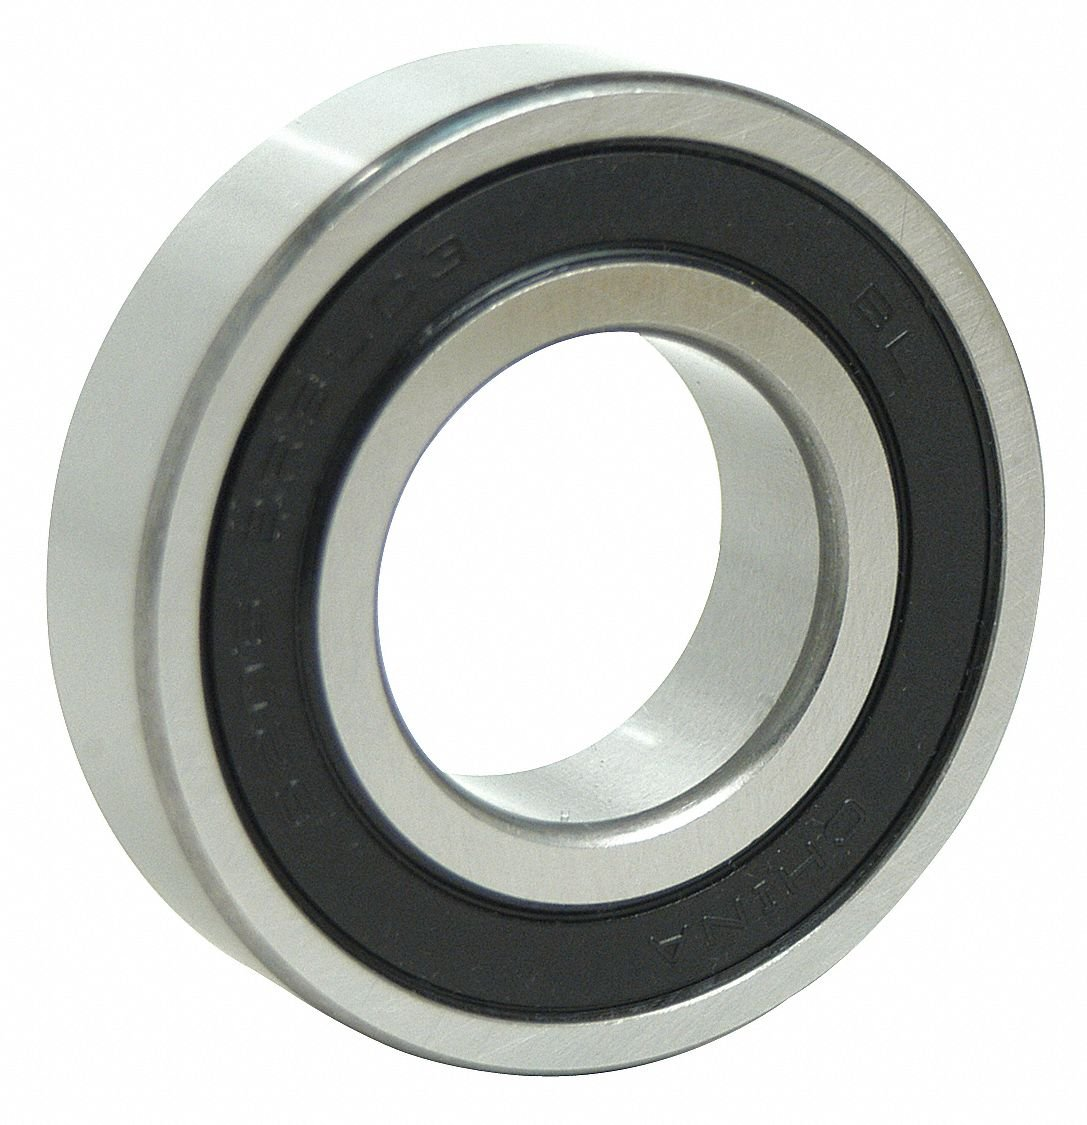 Radial Ball Bearing, PS, 20mm, 6004 2RS